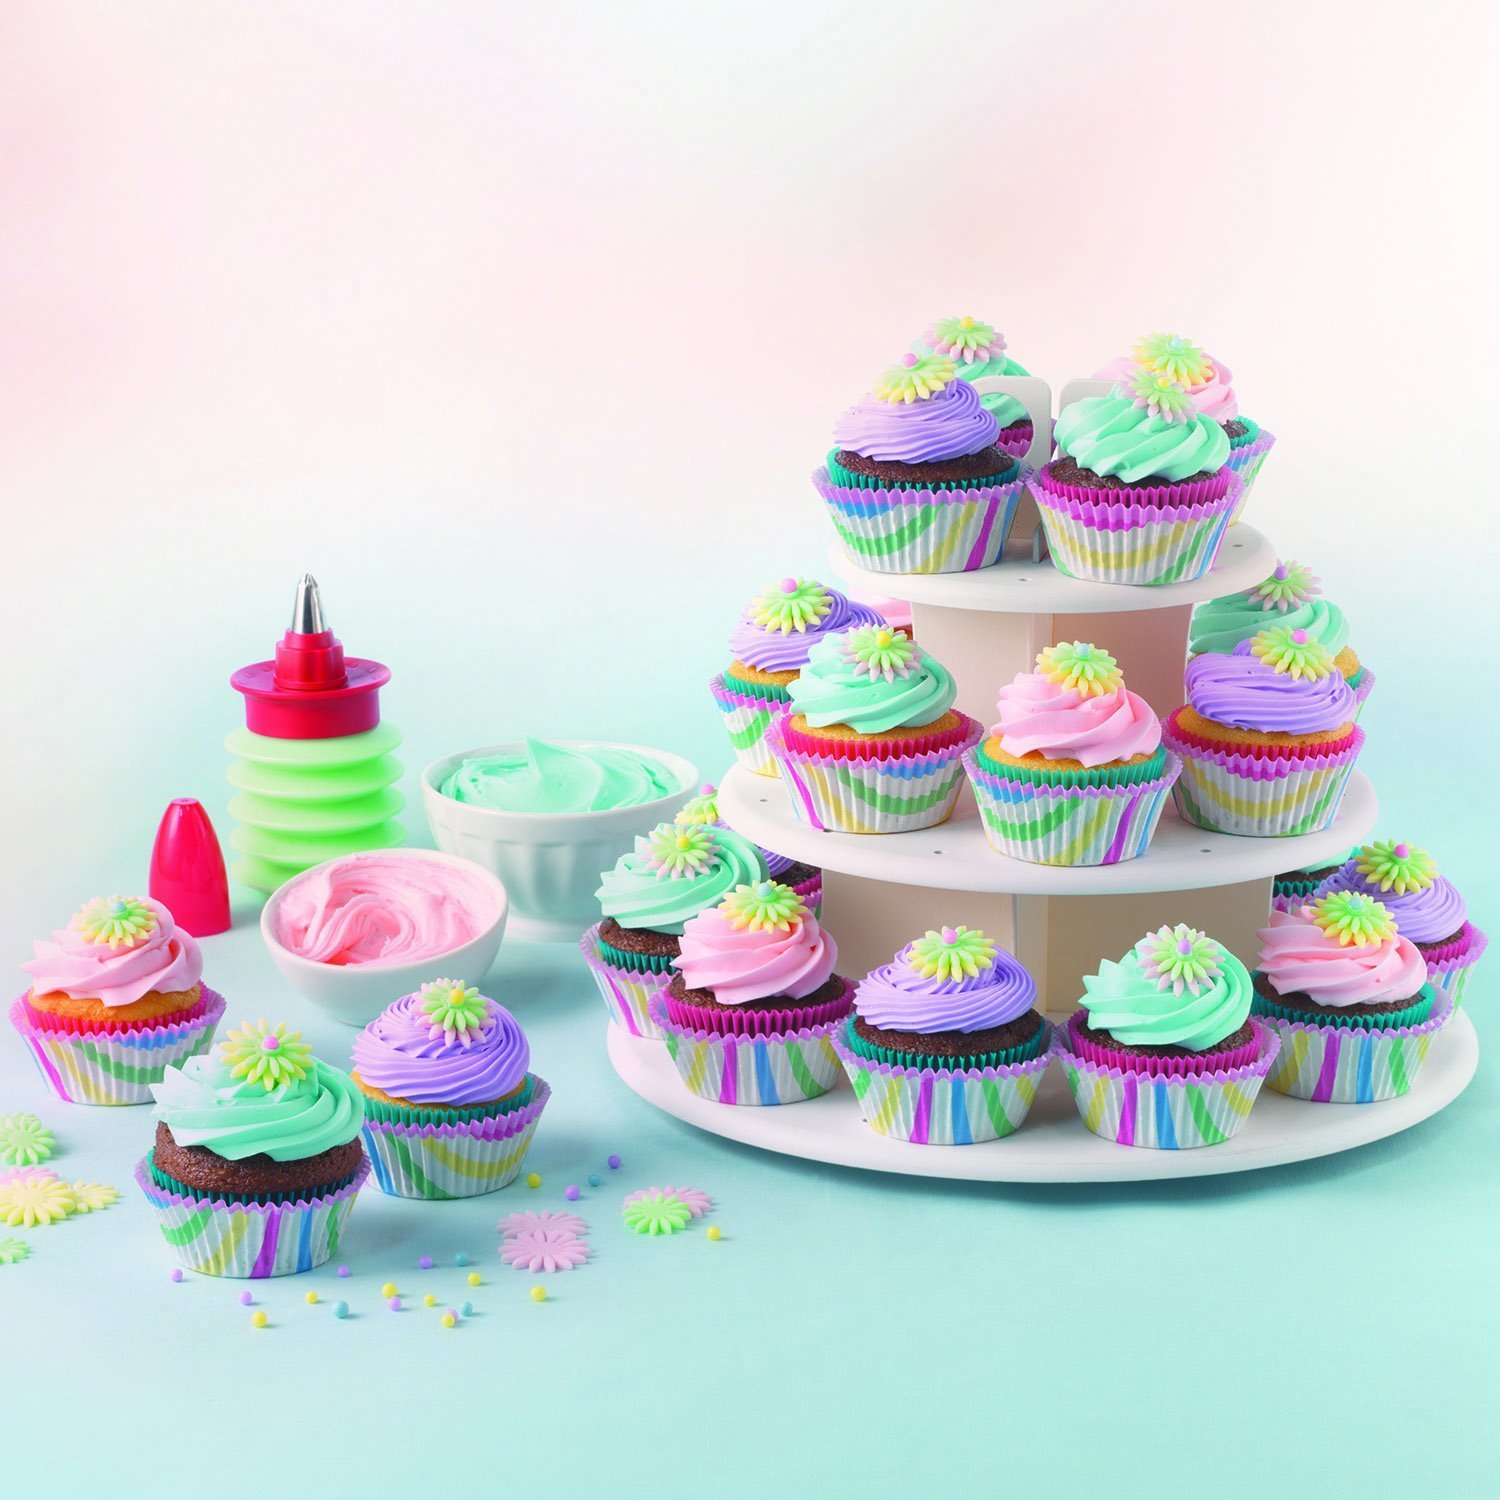 Buy SWEET CREATIONS Cake Pop & Cupcake Stand by Good Cook 3 Tier